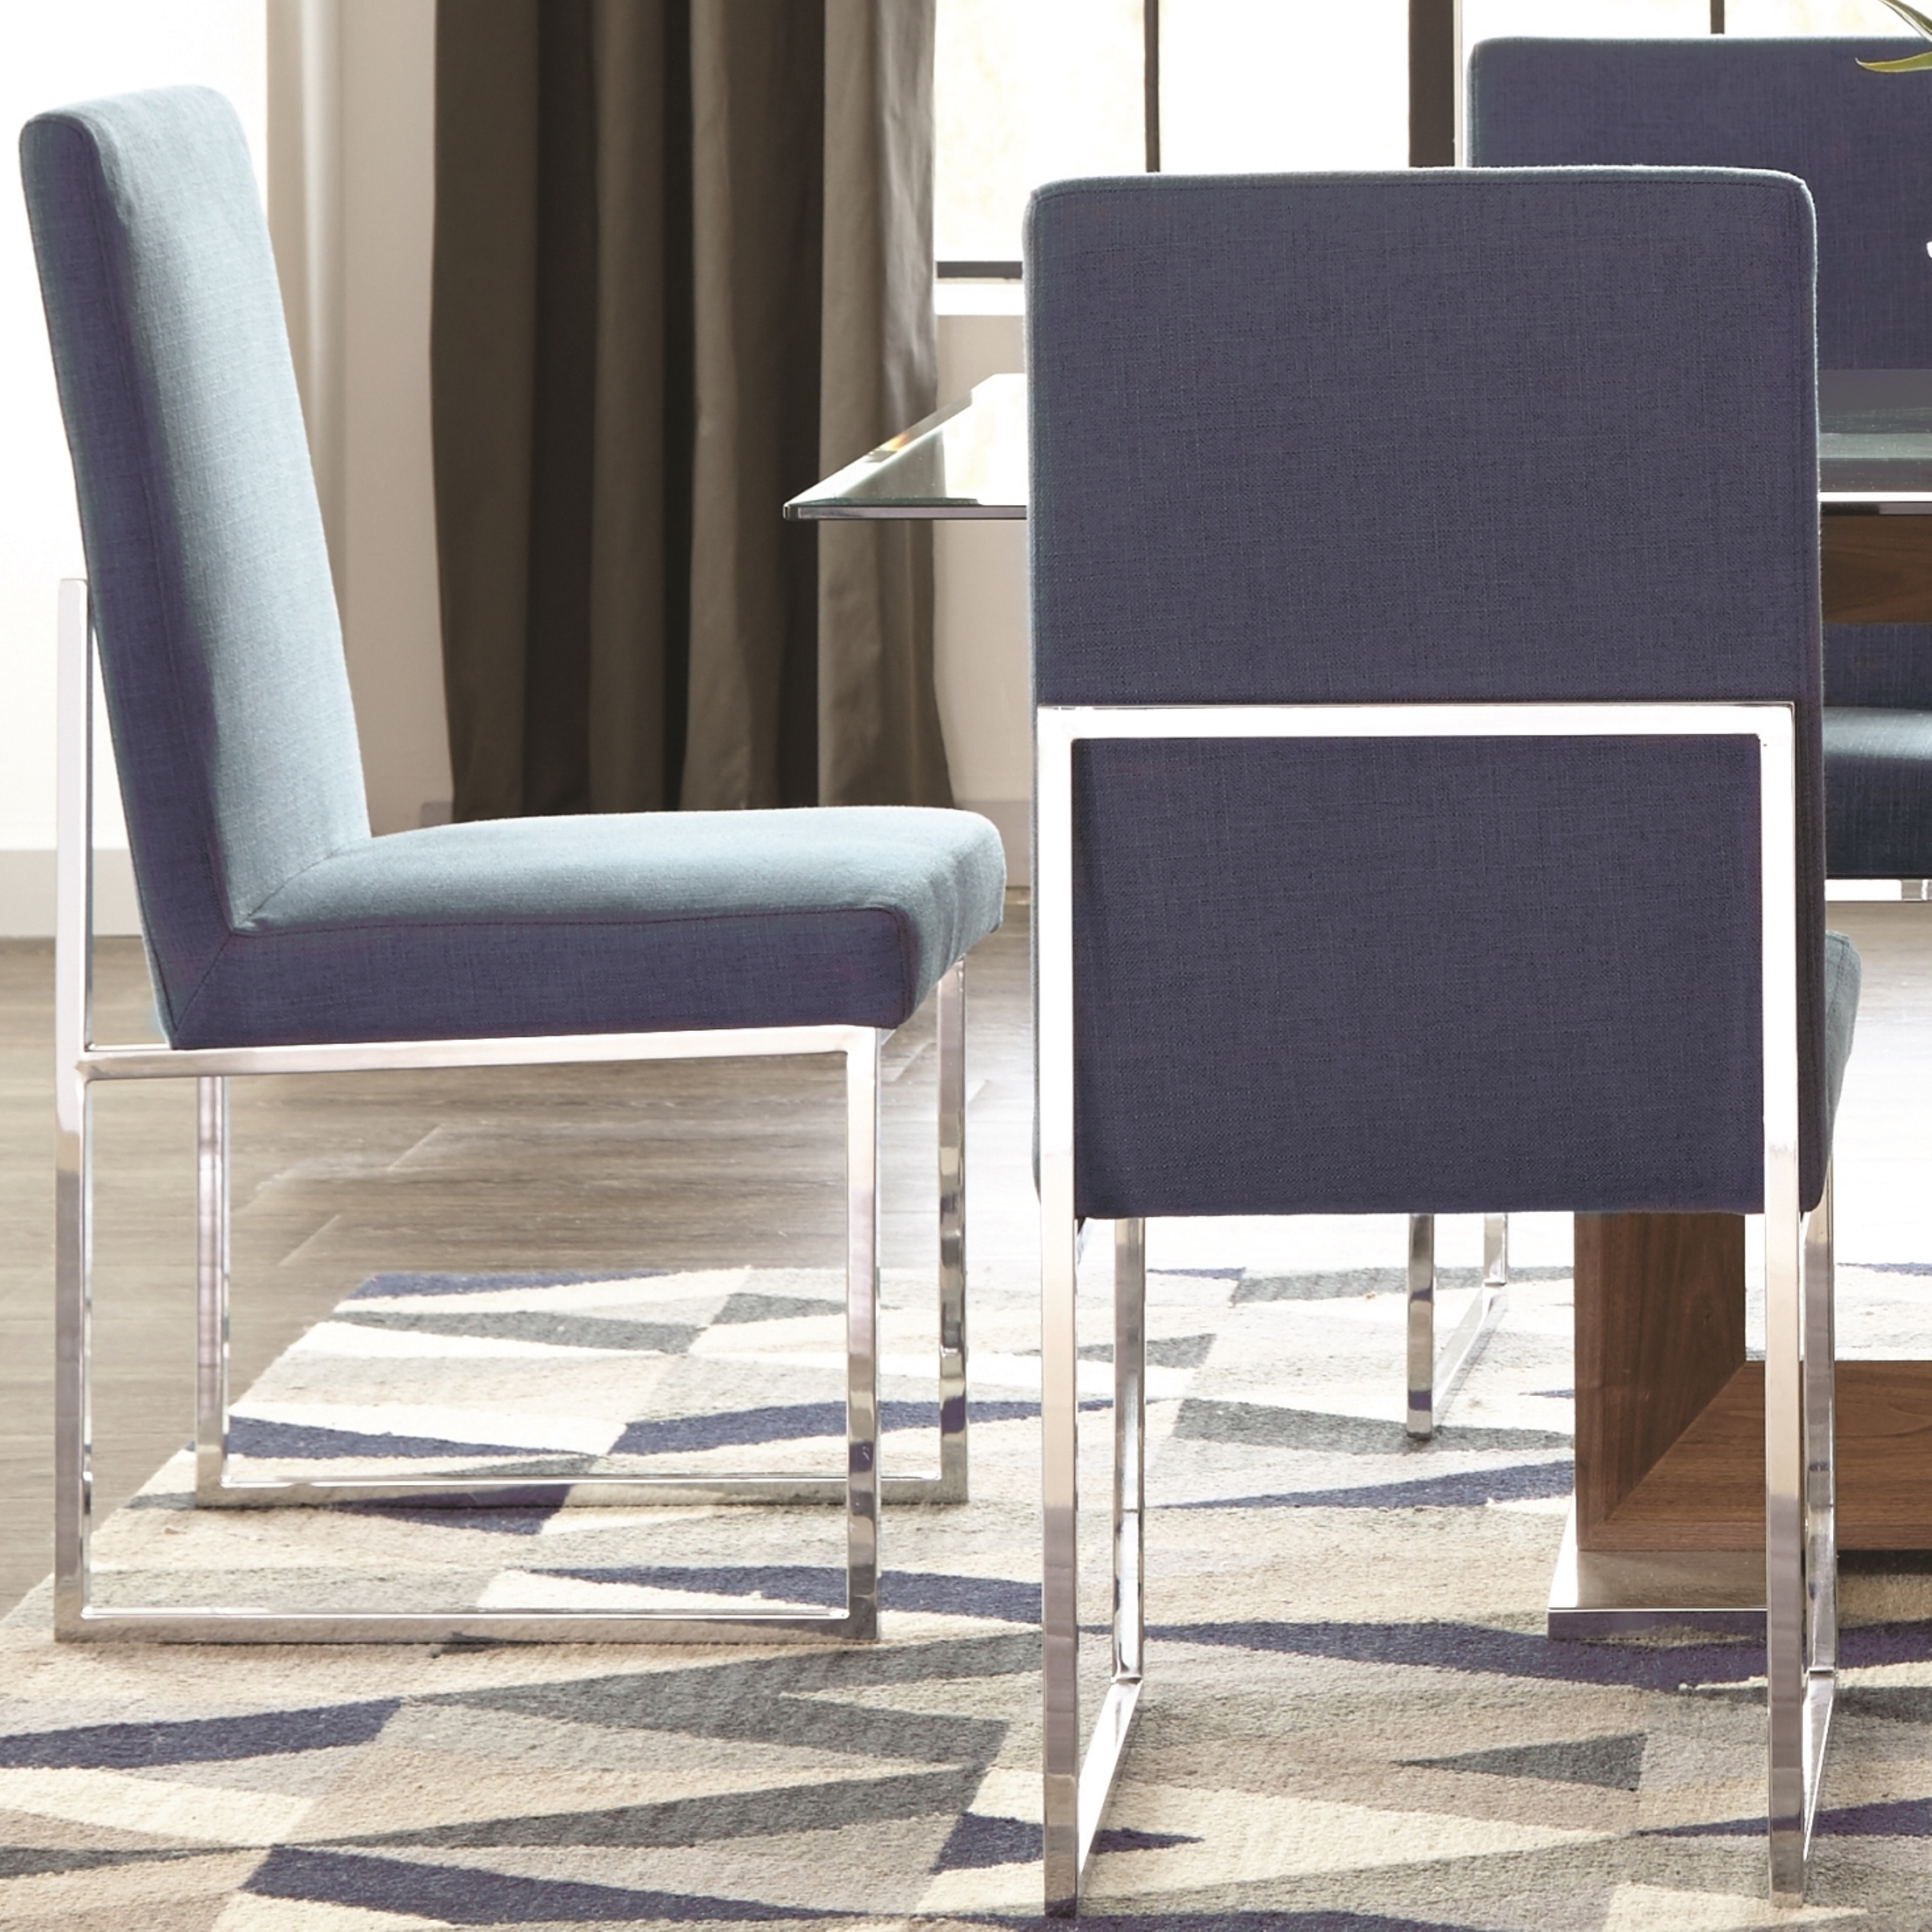 Blue Dining Chairs Modern Floating Design Blue Dining Chairs Set Of 2